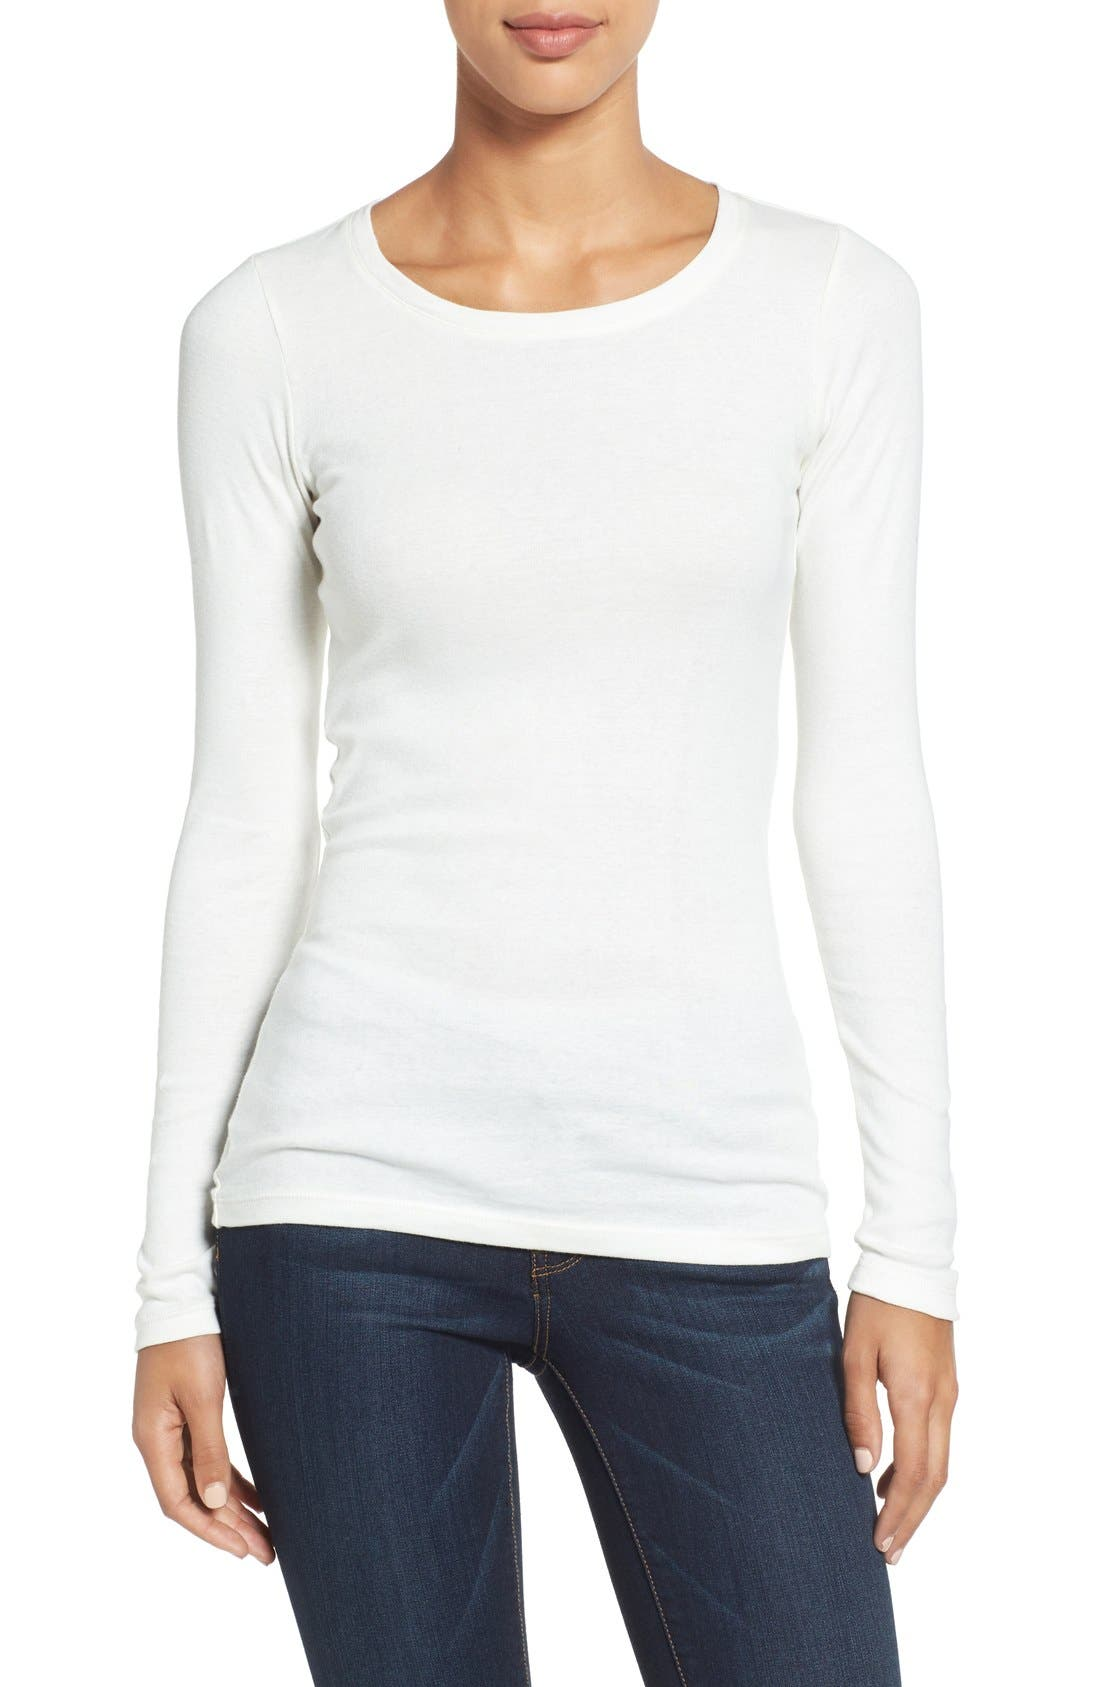 Alternate Image 1 Selected - Caslon® Long Sleeve Scoop Neck Cotton Tee (Regular & Petite)